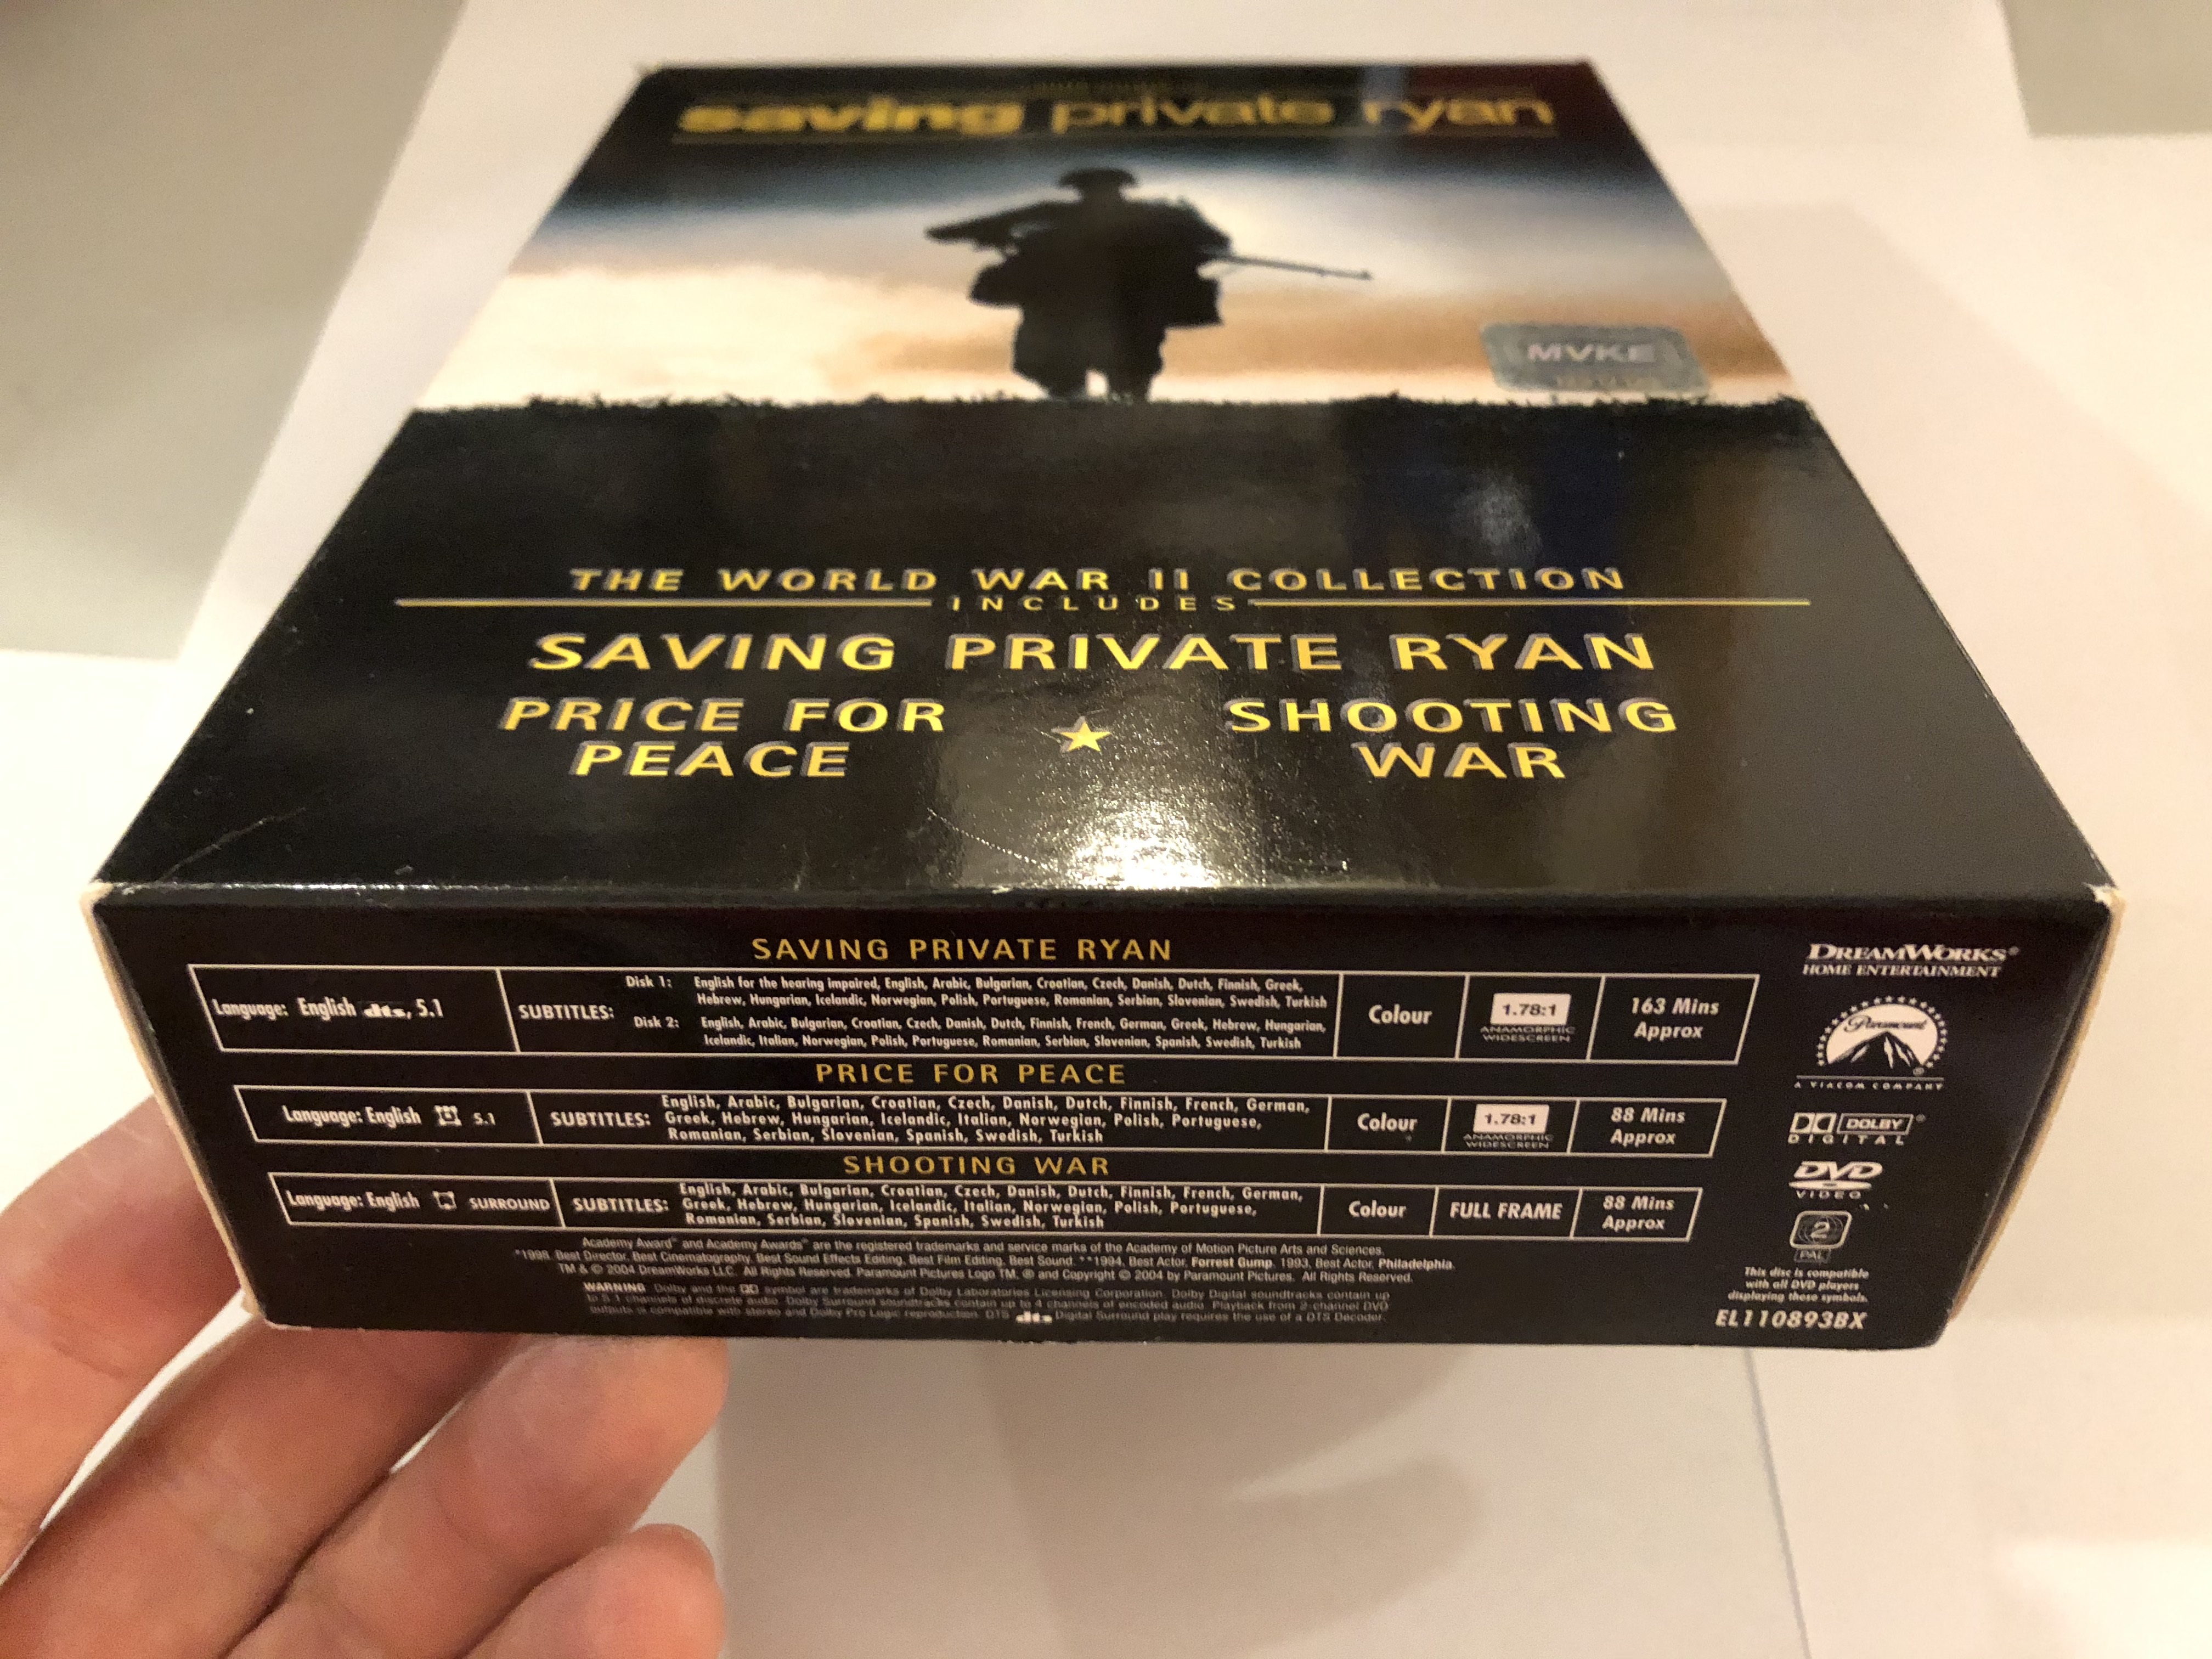 saving-private-ryan-dvd-set-1998-special-edition-directed-by-steven-spielberg-2-.jpg